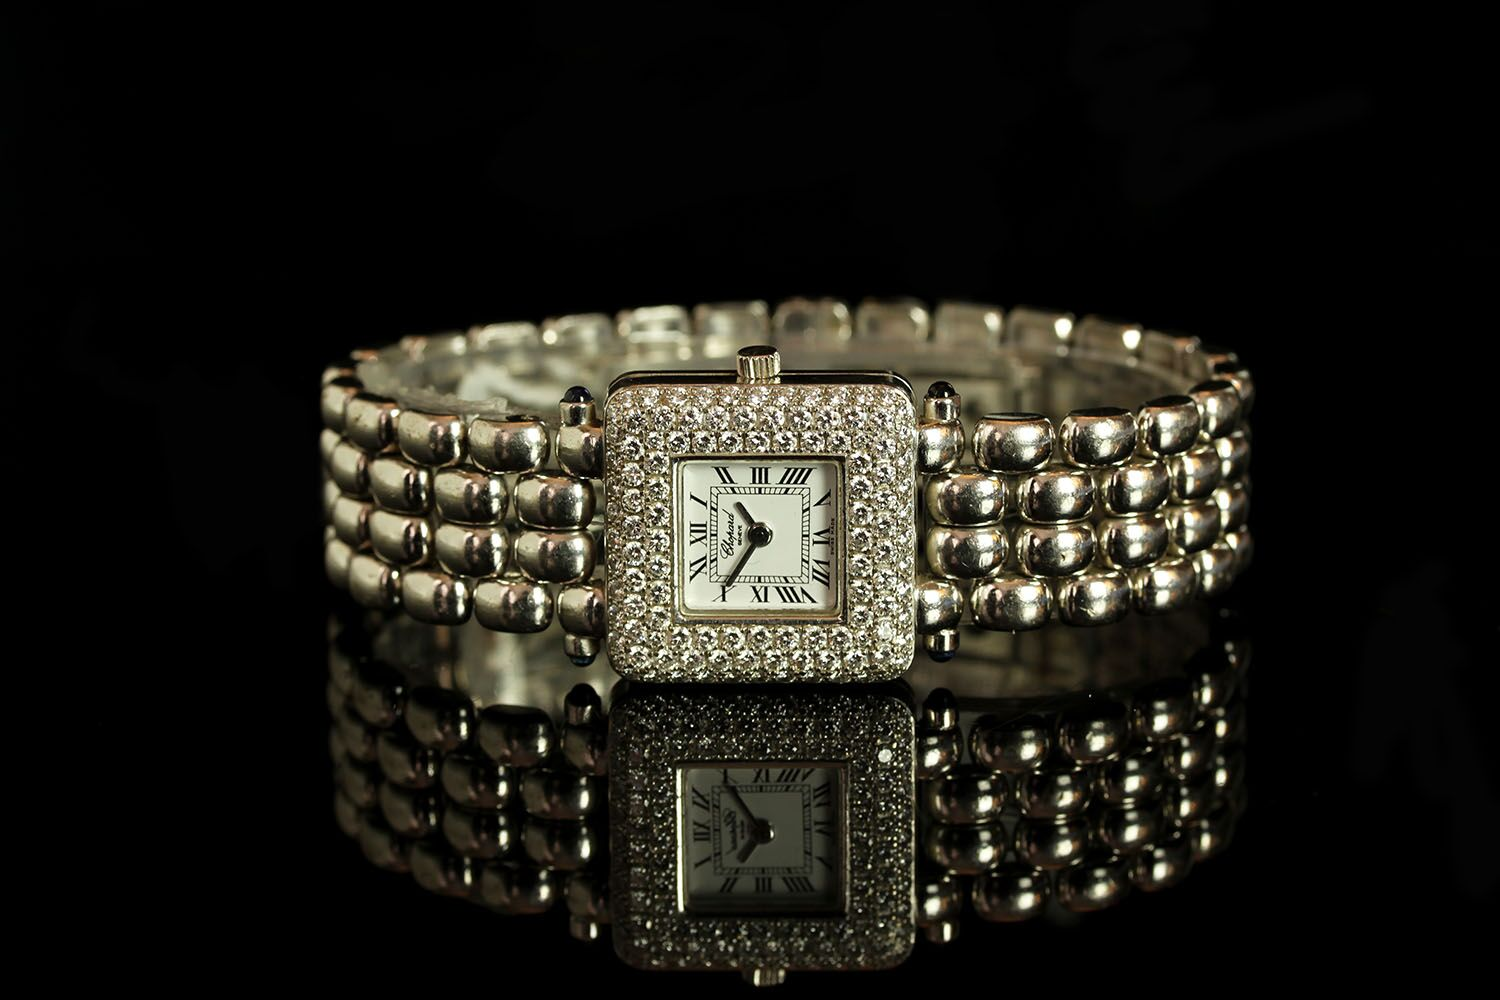 LADIES 18K WHITE GOLD HAPPY SPORT CLASSIC SQUARE DIAMOND BEZEL WATCH,507010,square, white dial